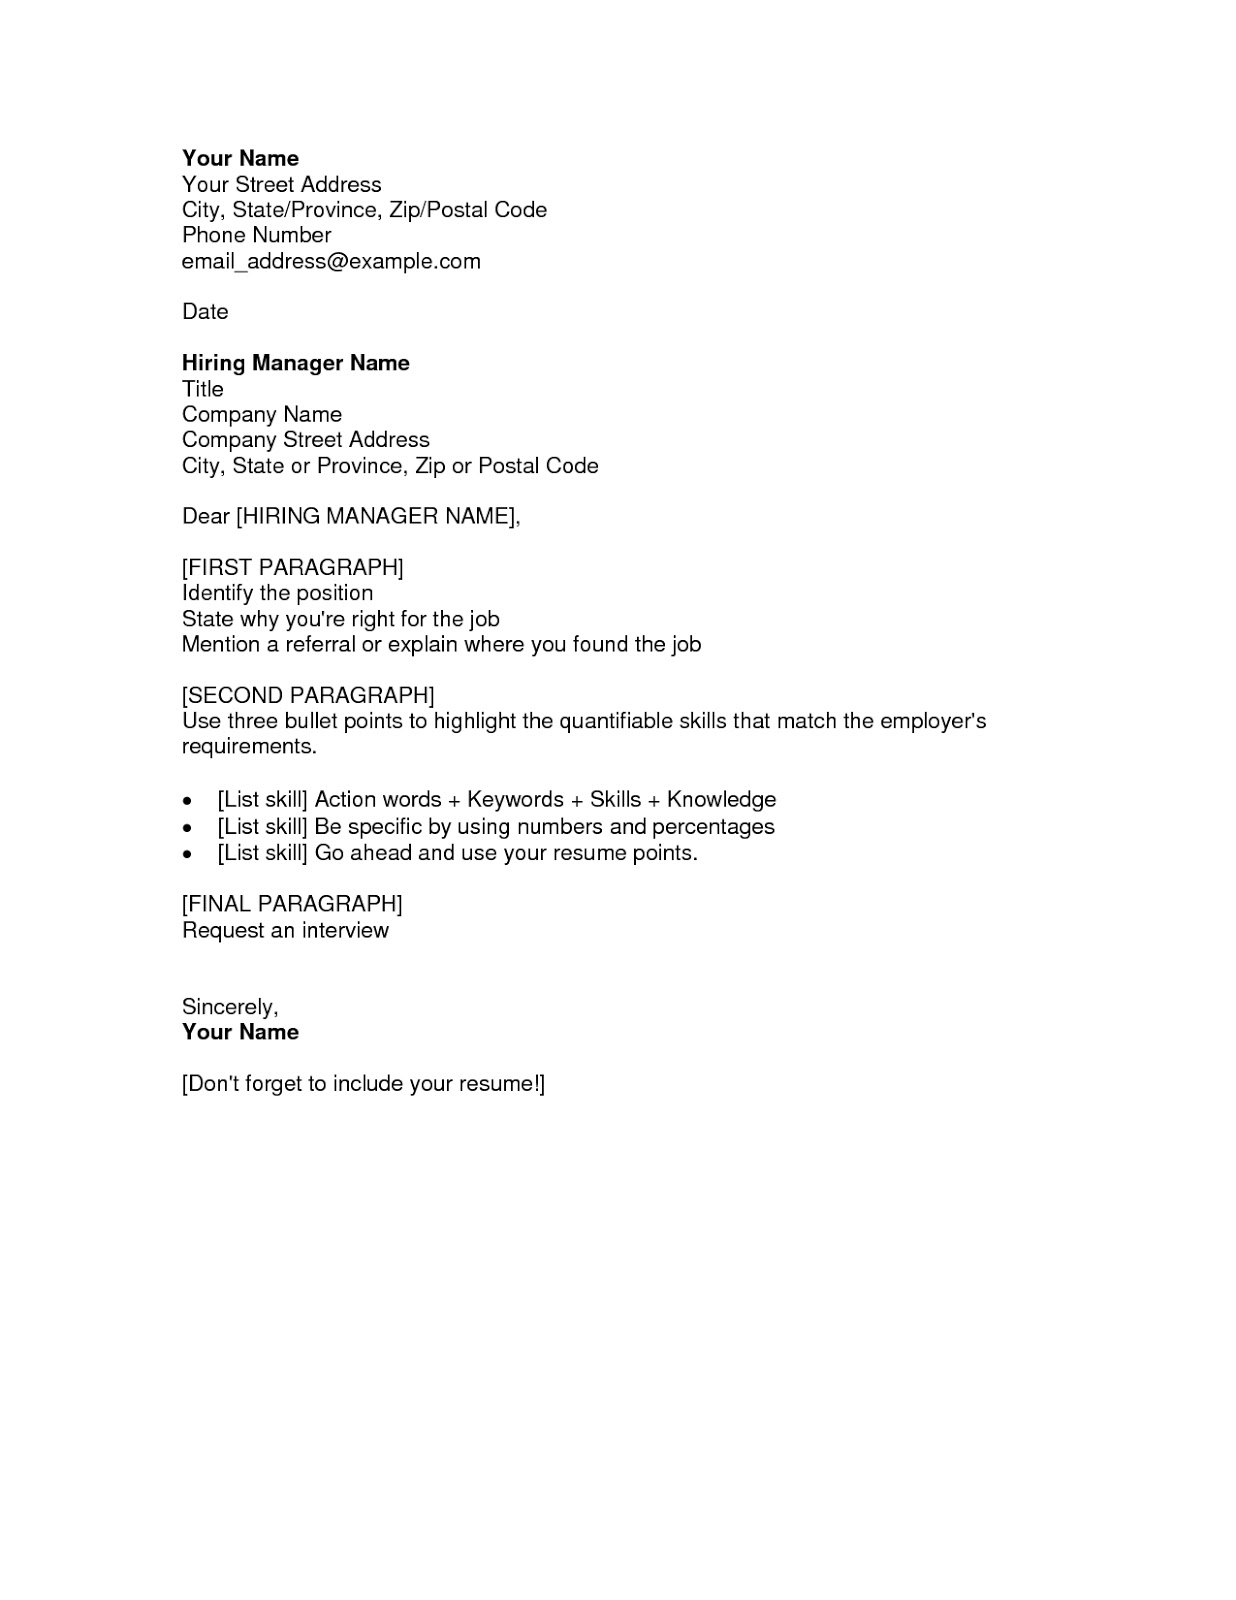 Good Resume Cover Letter Free Cover Letter Samples For Resumes Sample Resumes